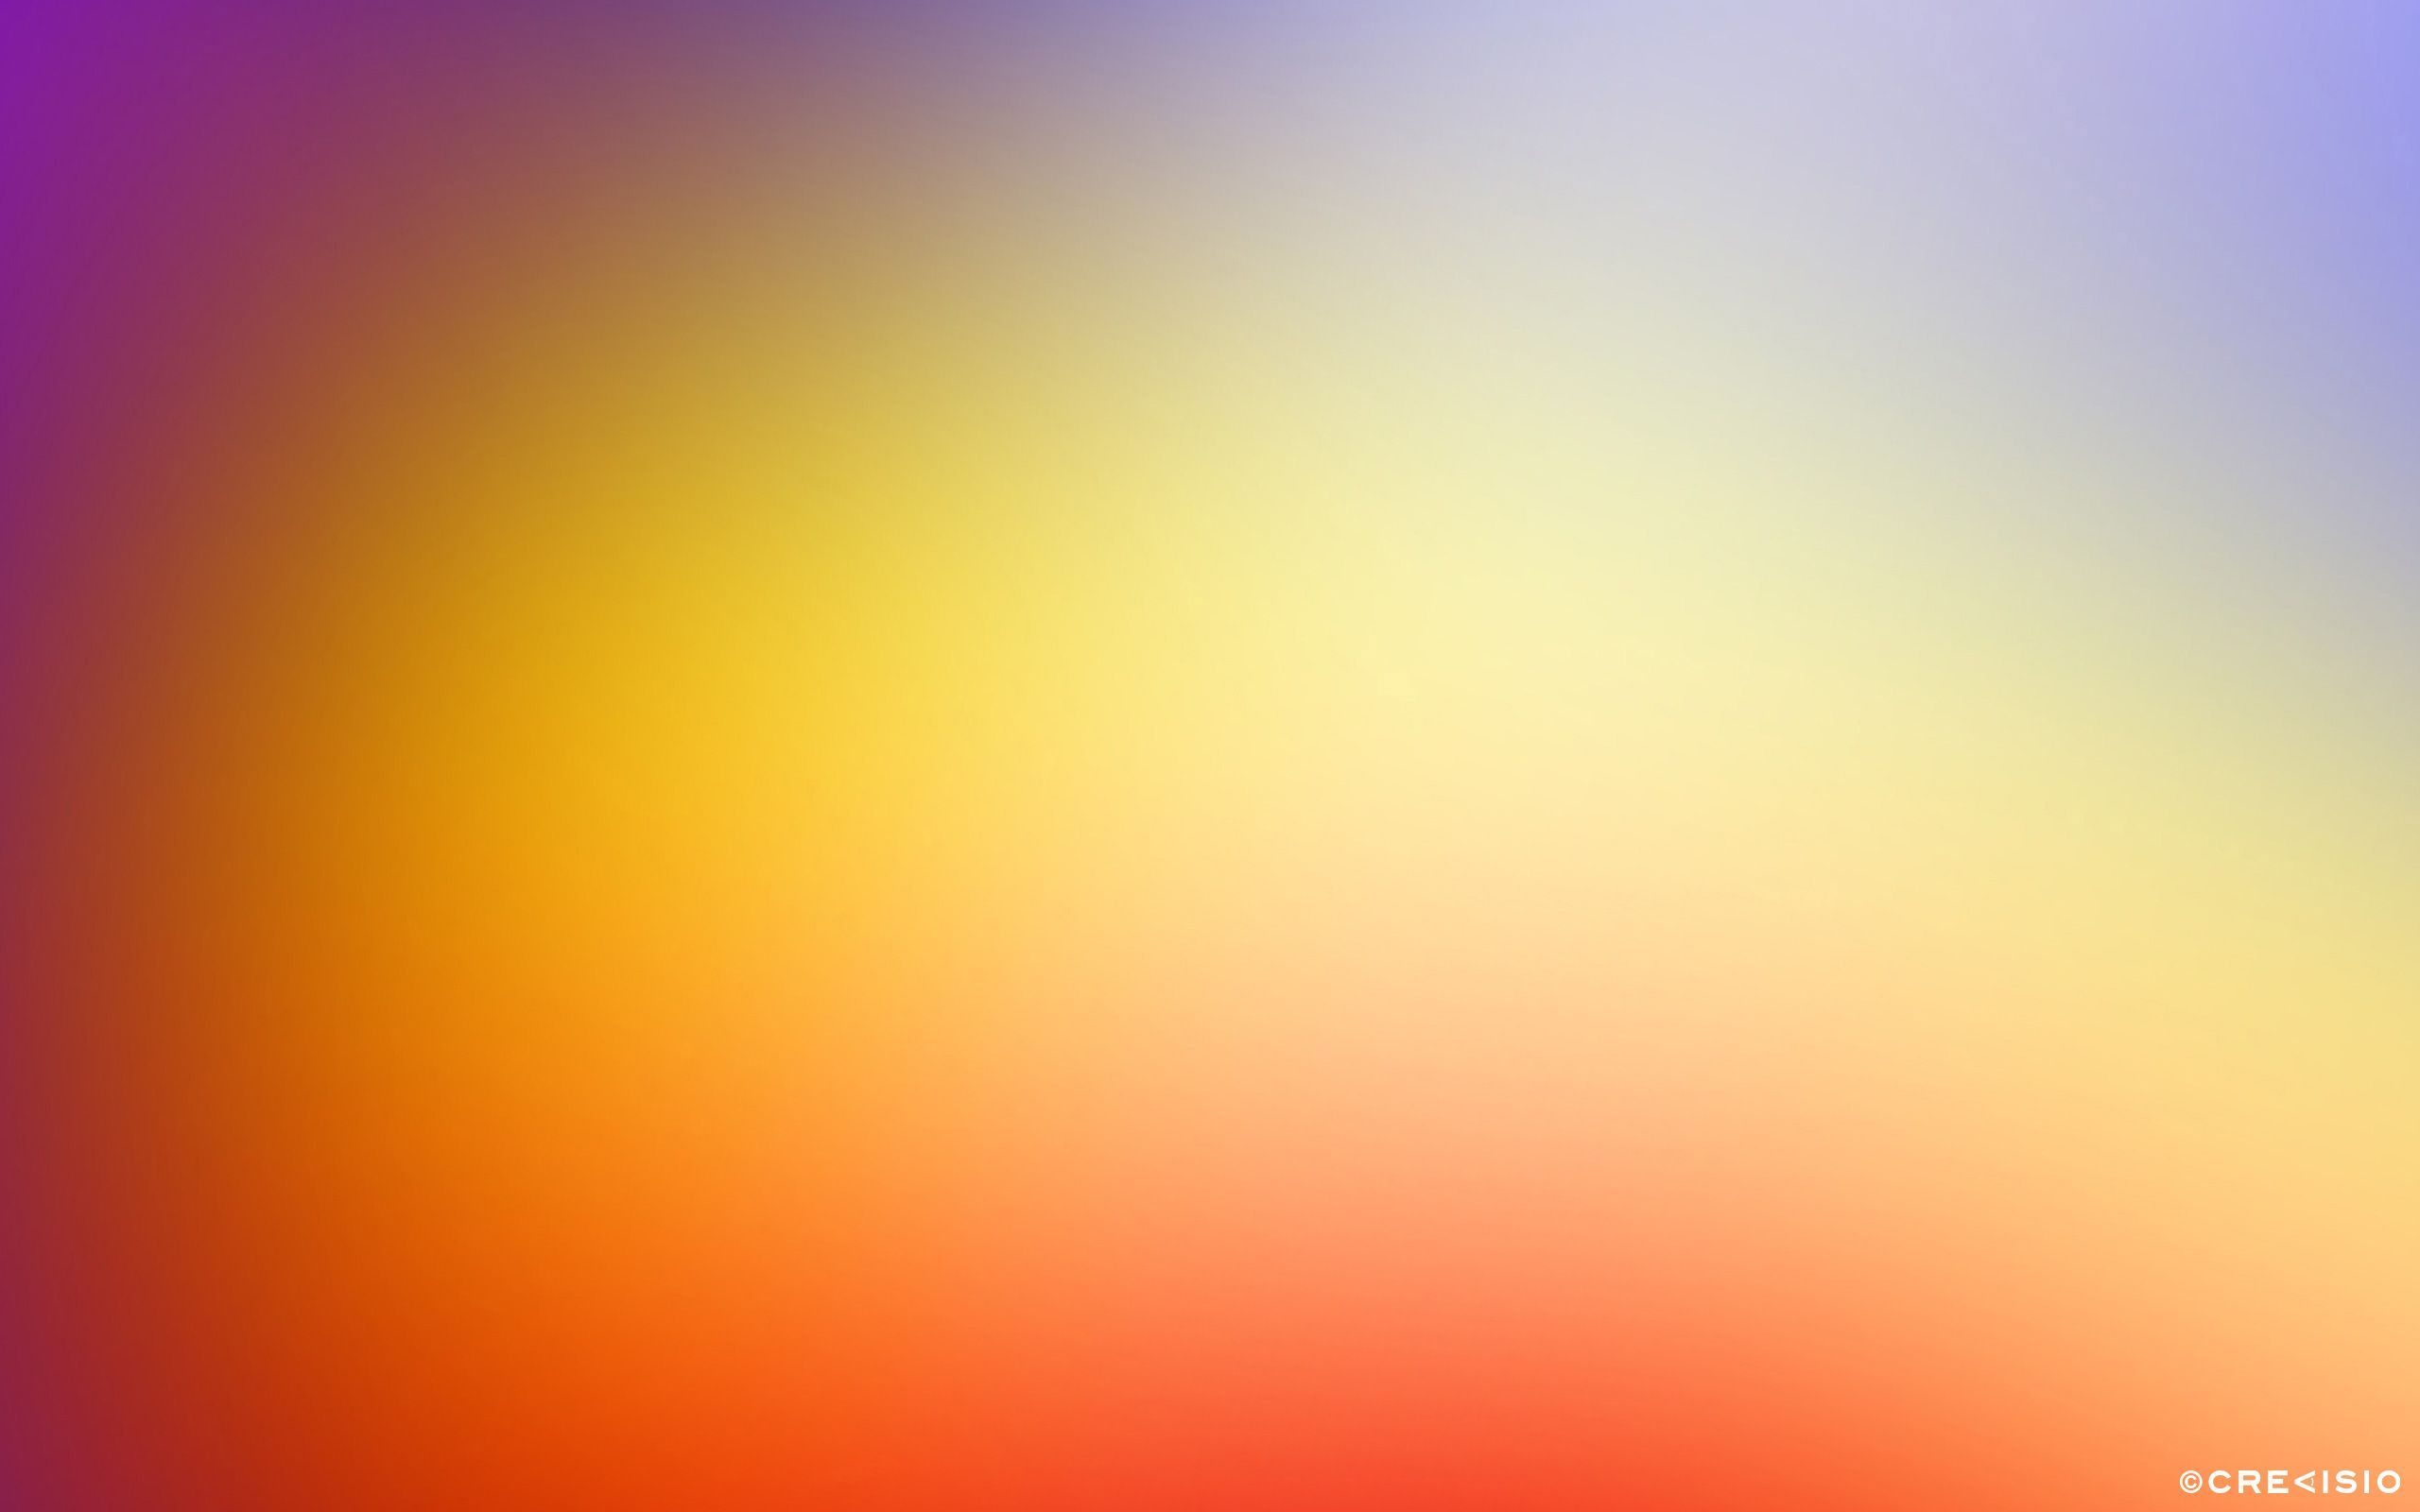 Revisions of gradients